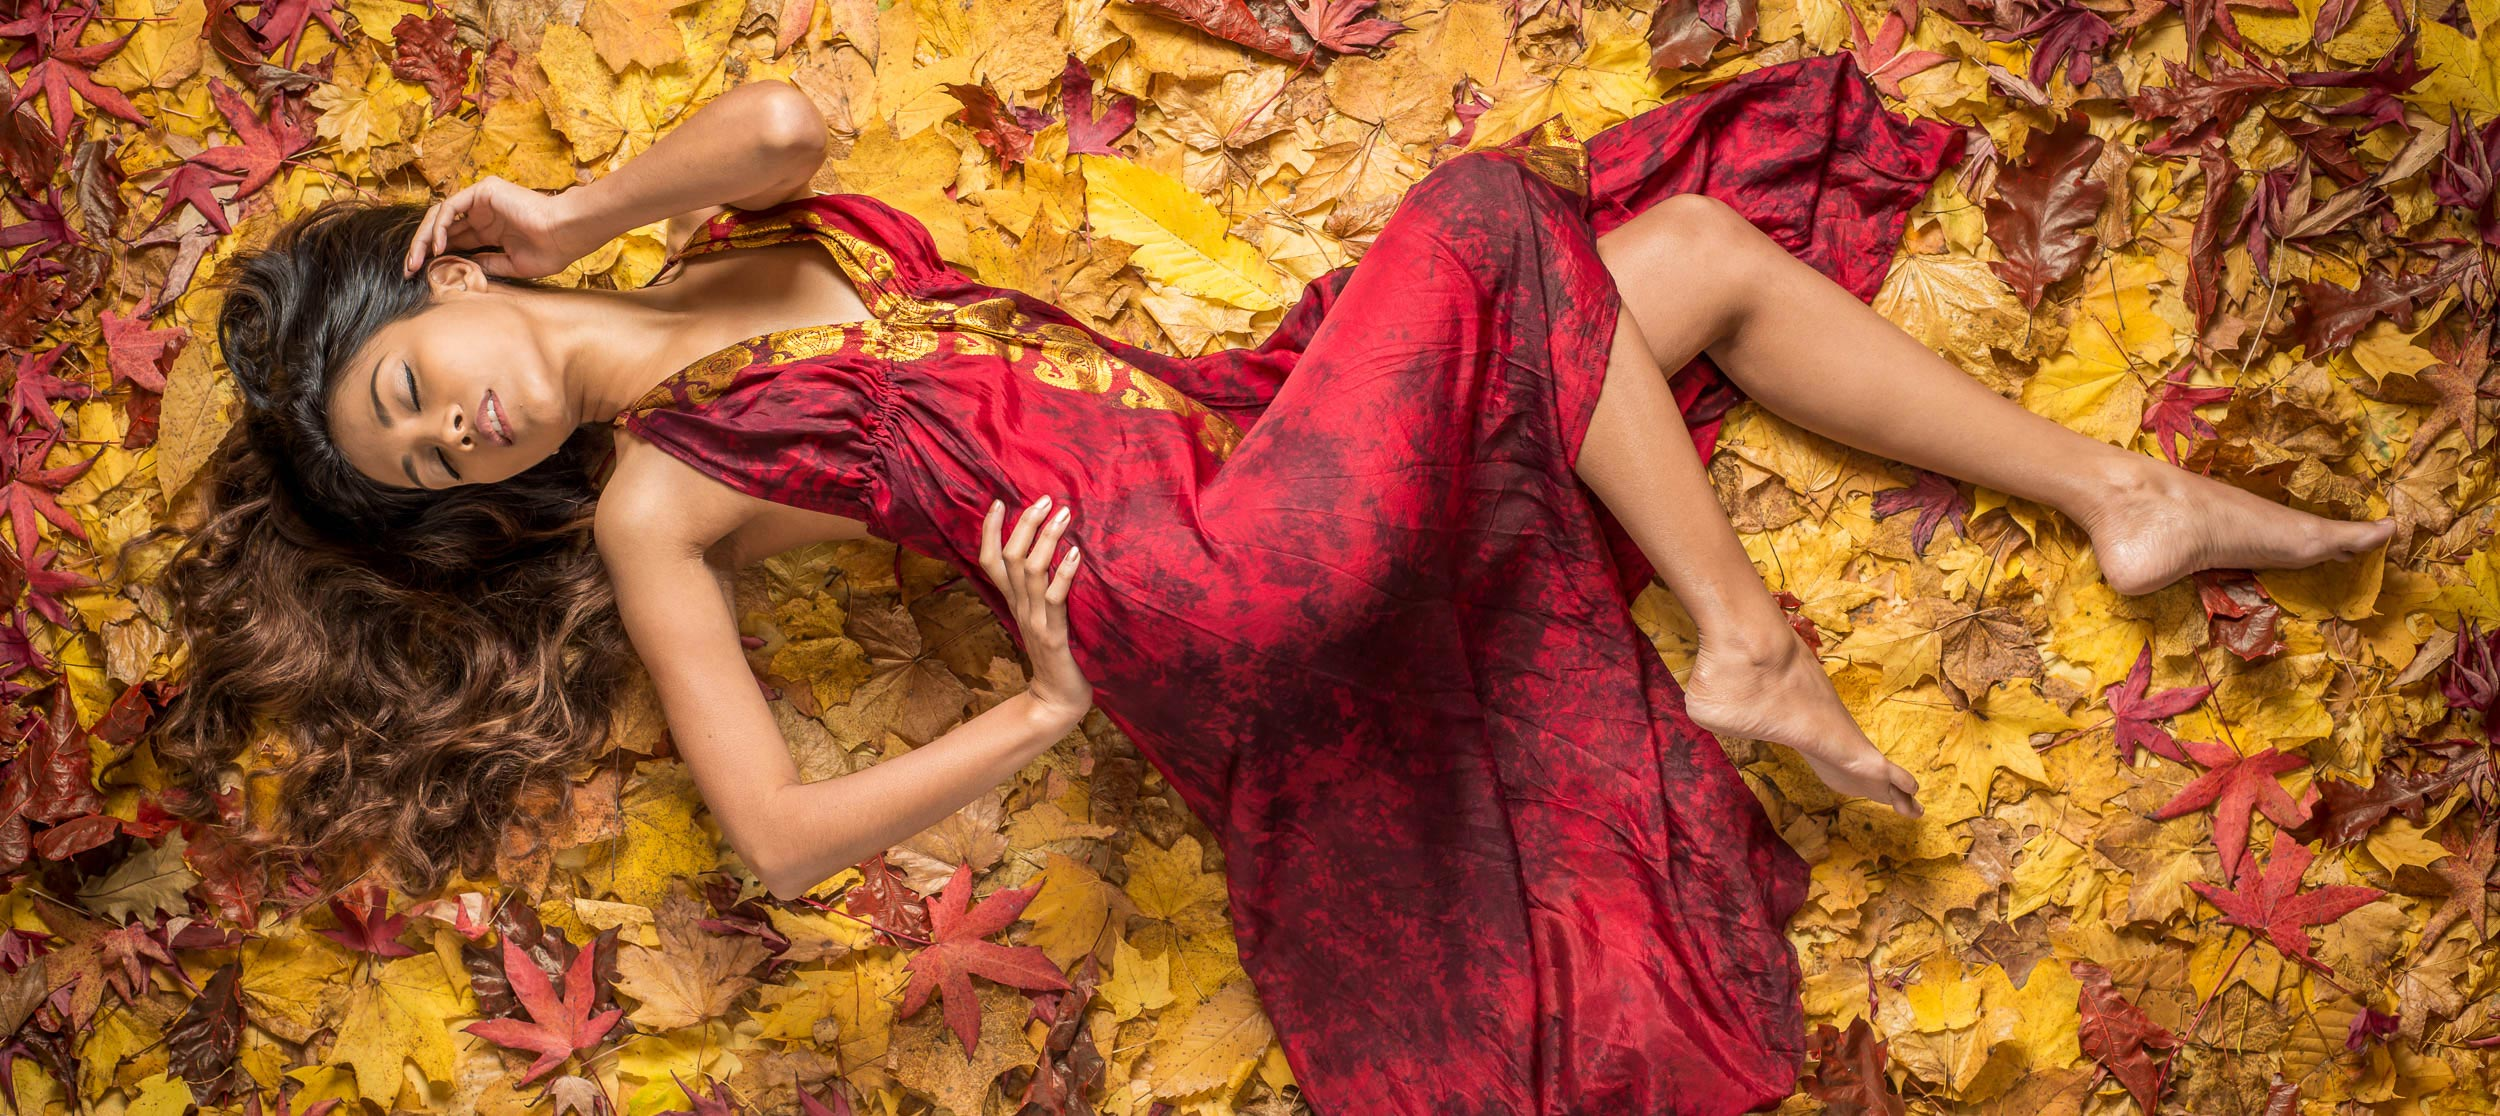 Fashion Photographers image of a model in a red silk dress on a background of autumn leaves